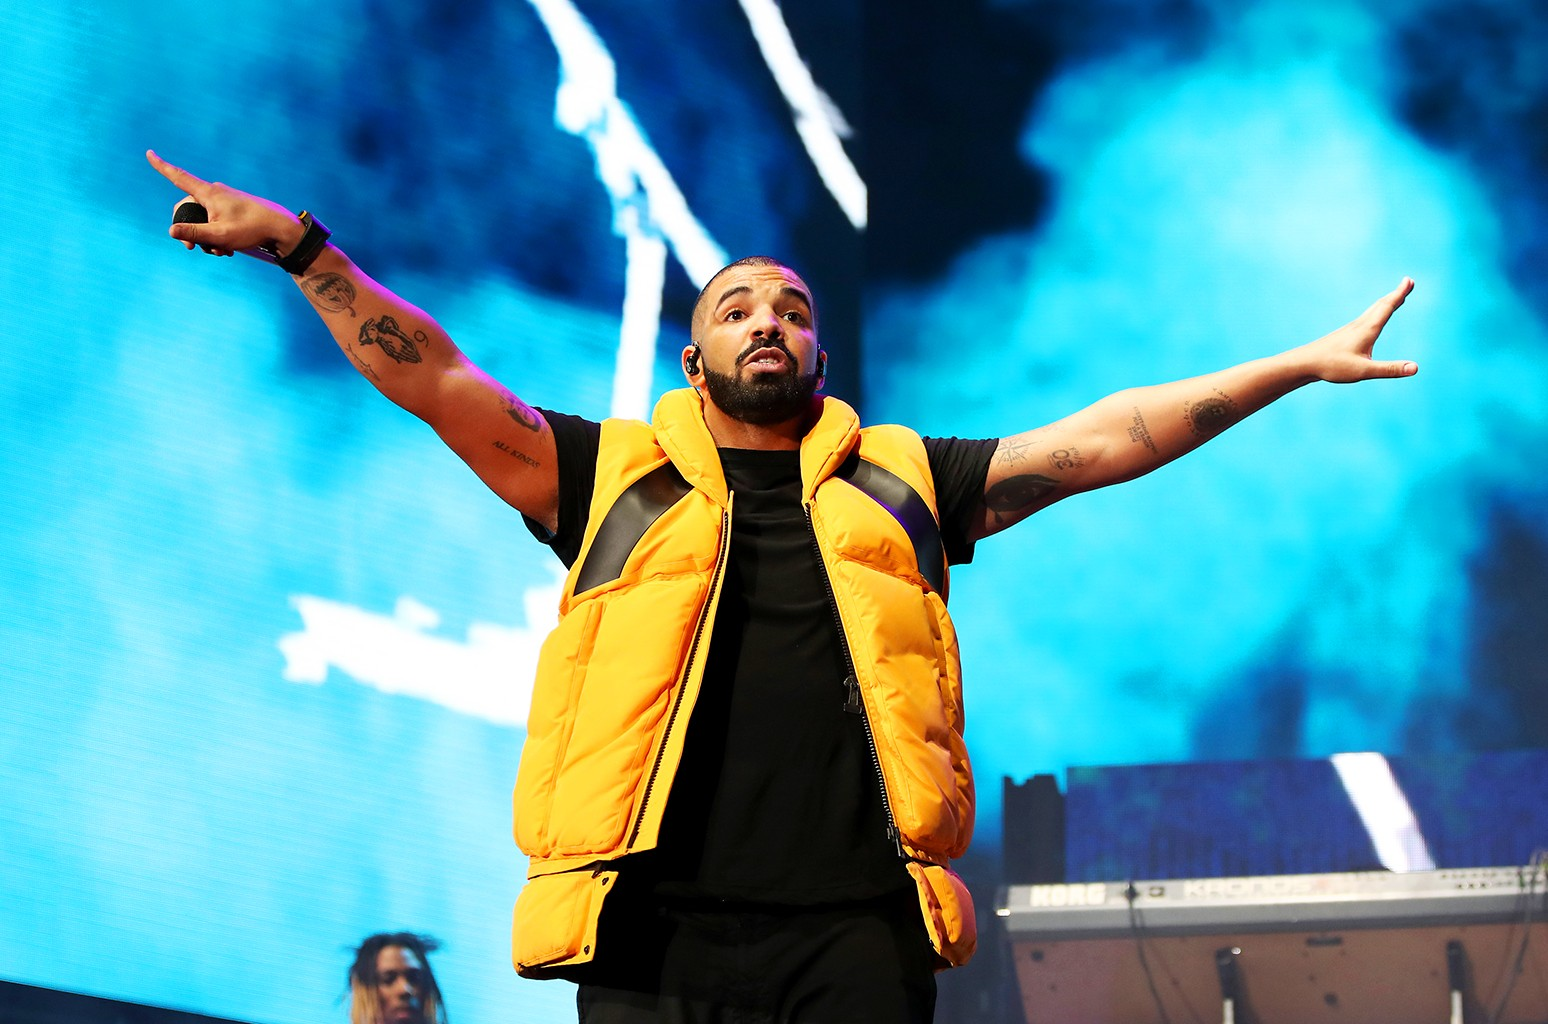 Drake performs on the Coachella stage during day 2 of the Coachella Valley Music And Arts Festival (Weekend 1) at the Empire Polo Club on April 15, 2017 in Indio, Calif.